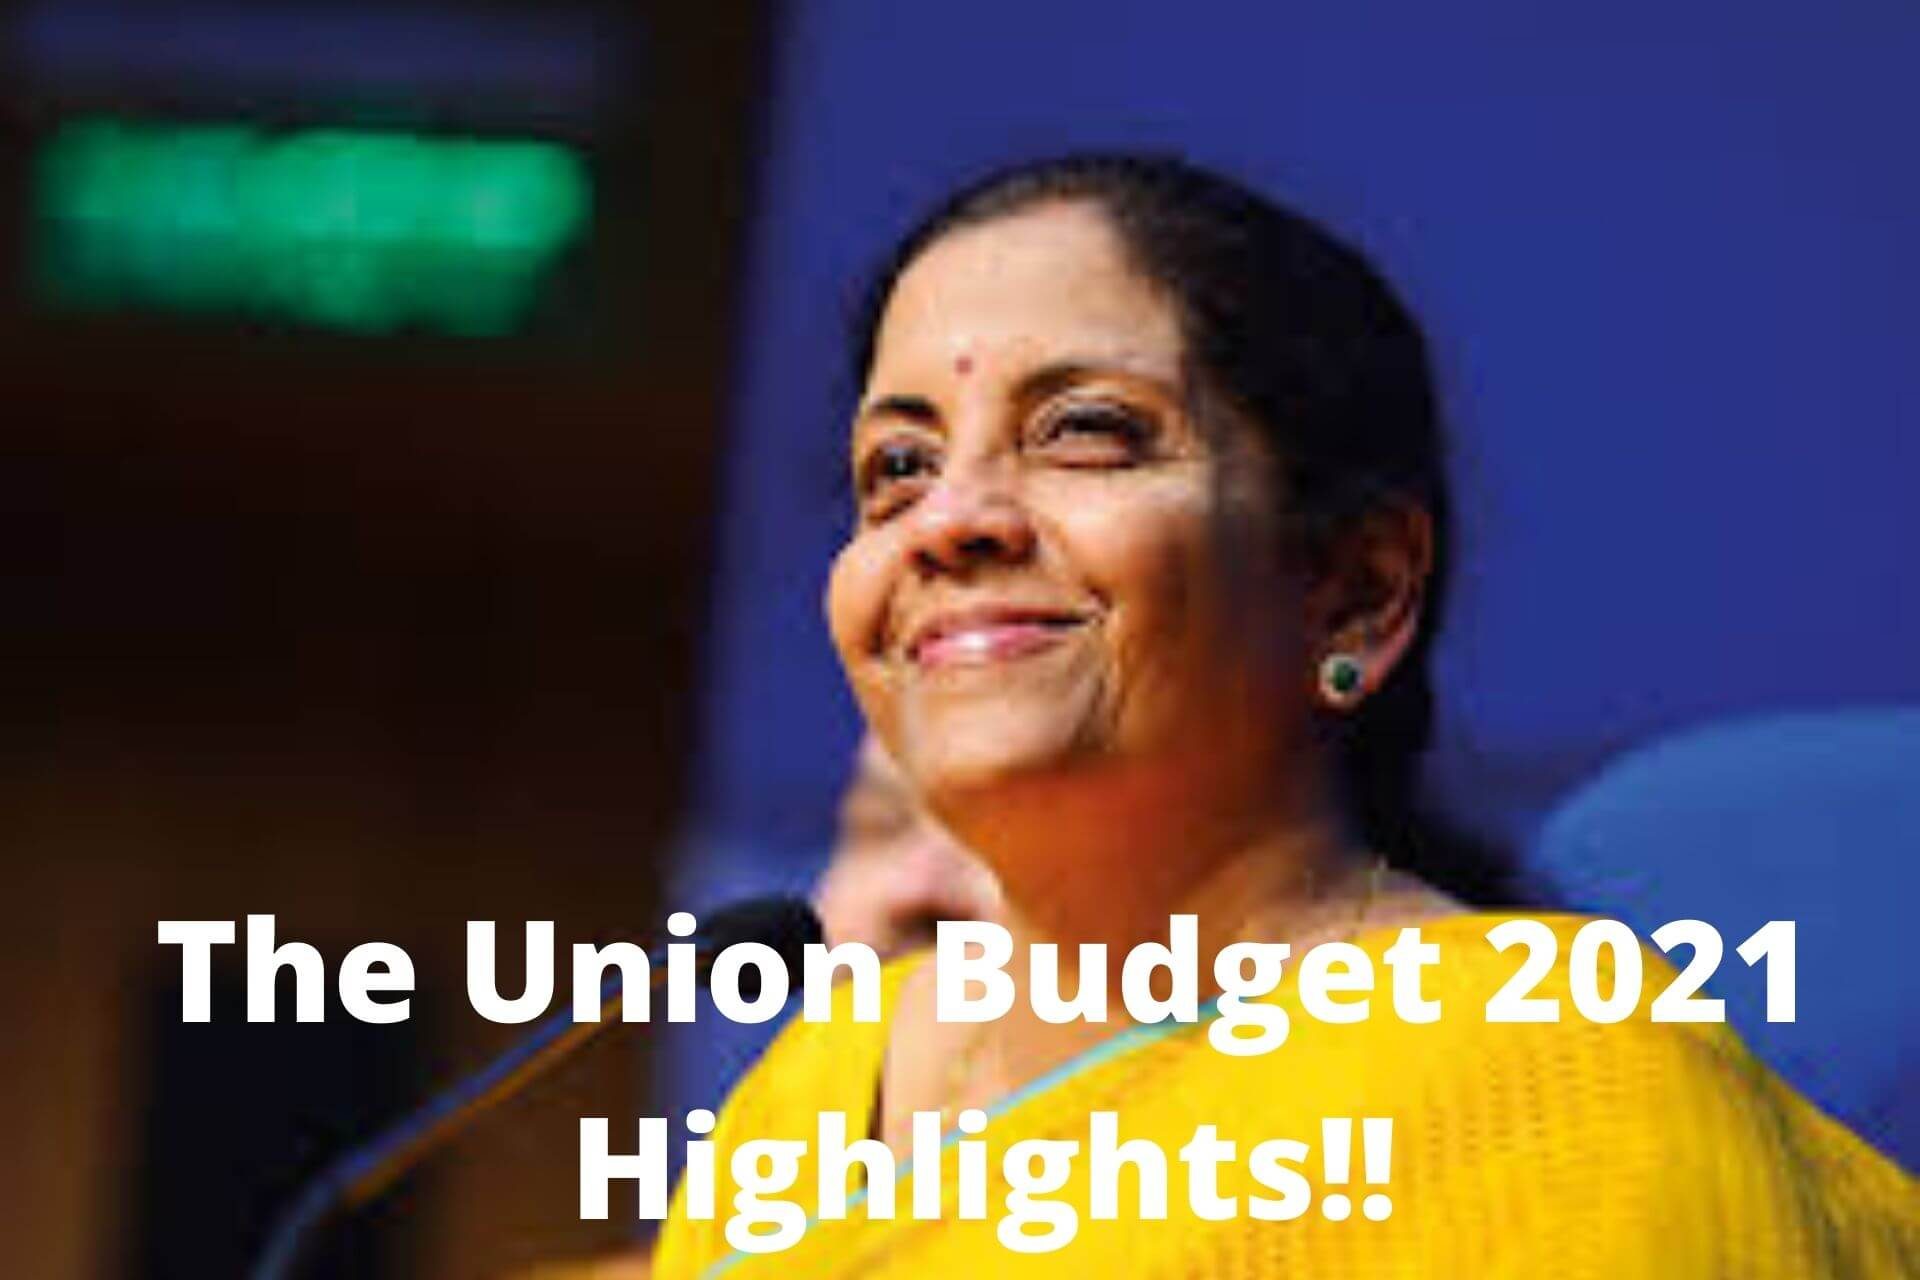 The Union Budget 2021 Highlights!!